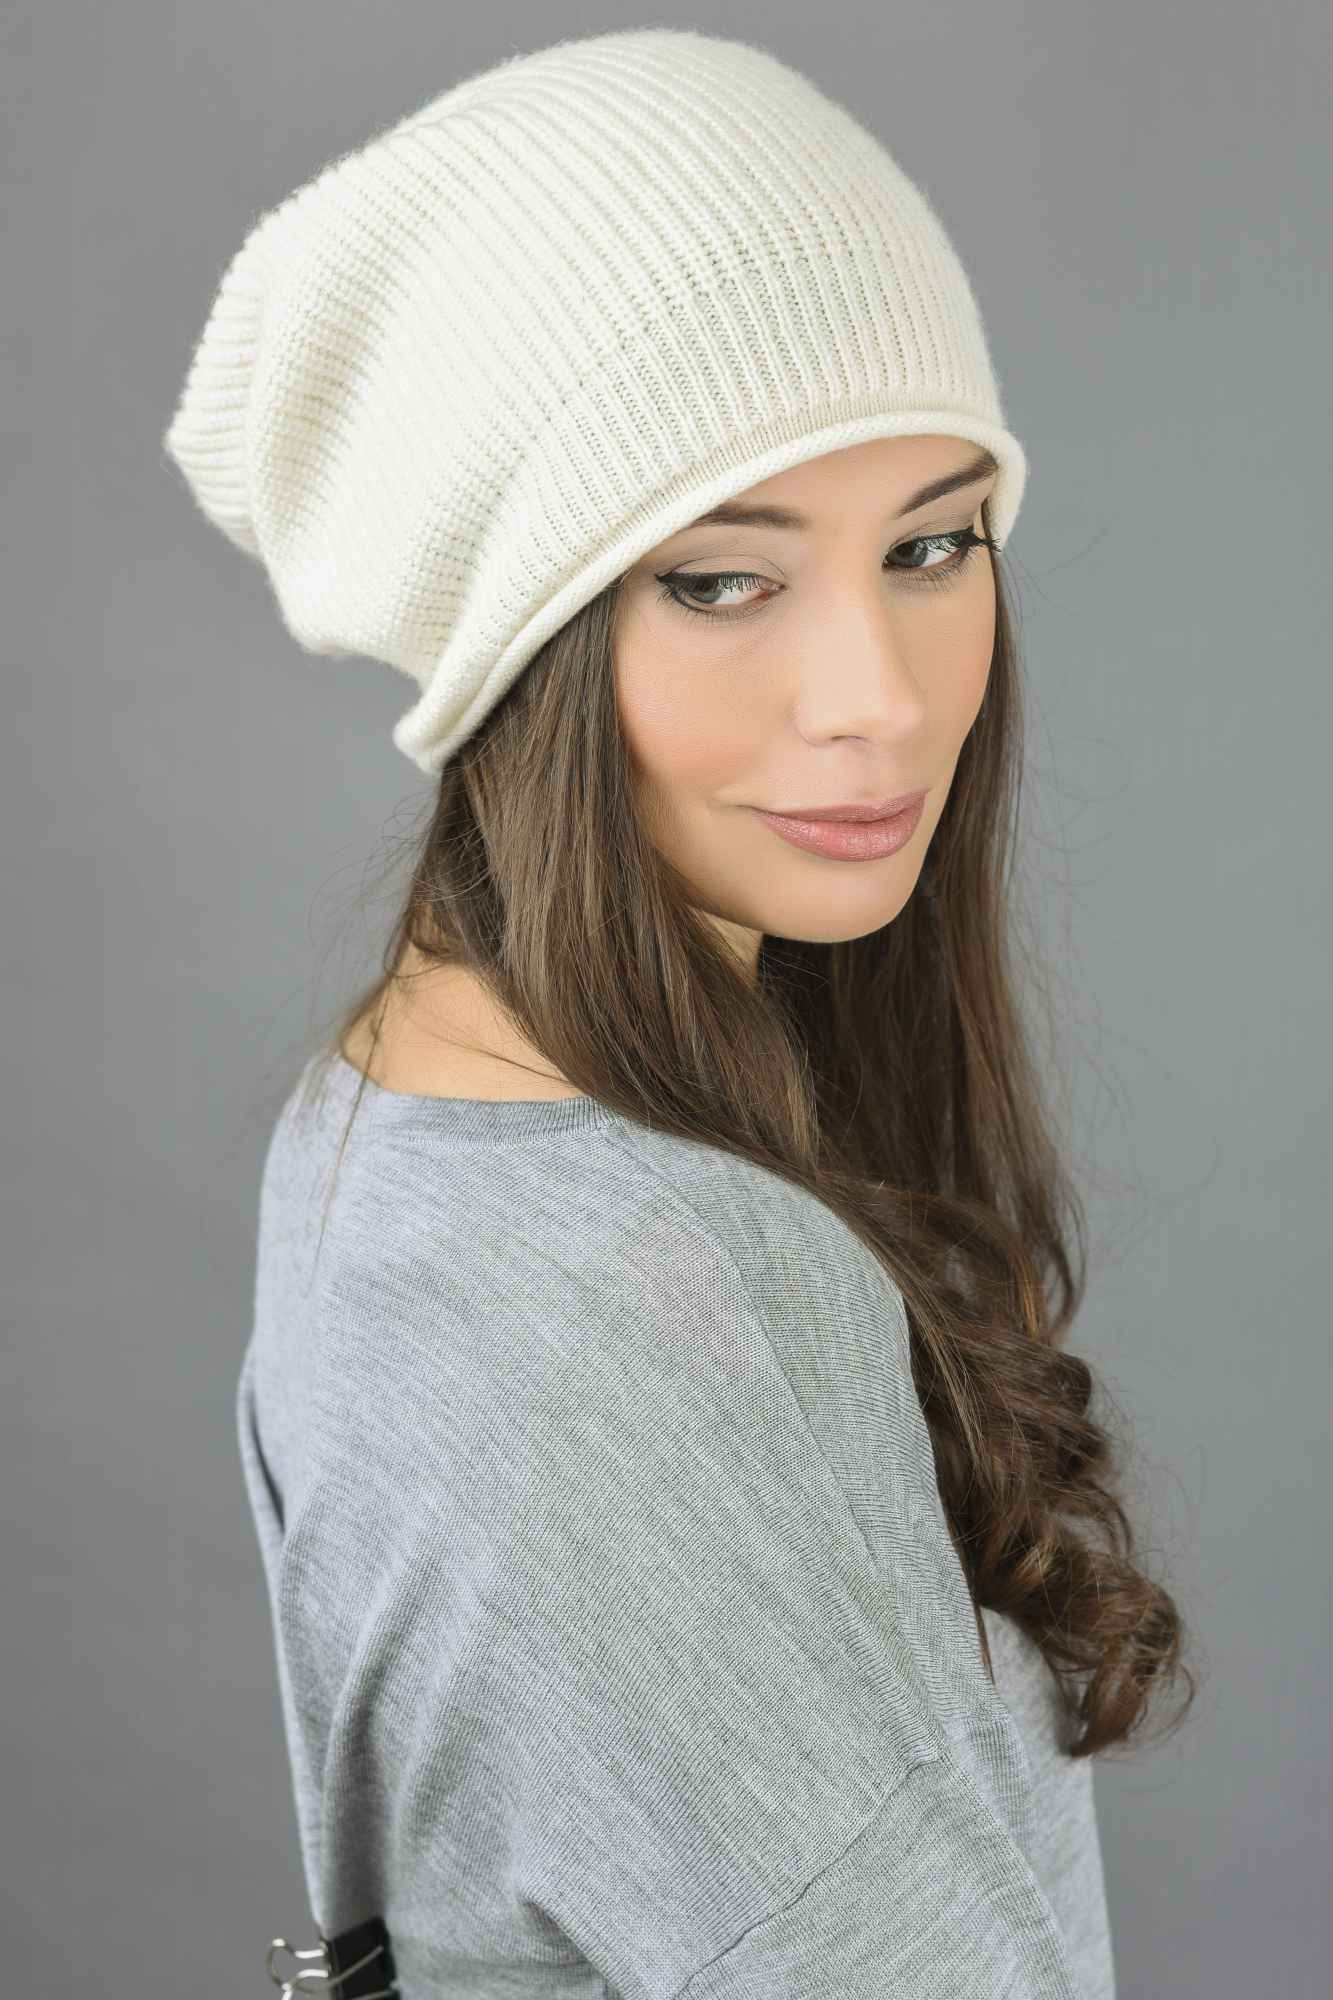 Luxury Pure Cashmere Ribbed Knitted Slouchy Beanie Hat In Cream Slouchy Beanie Hat Of Incredible 40 Ideas Slouchy Beanie Hat